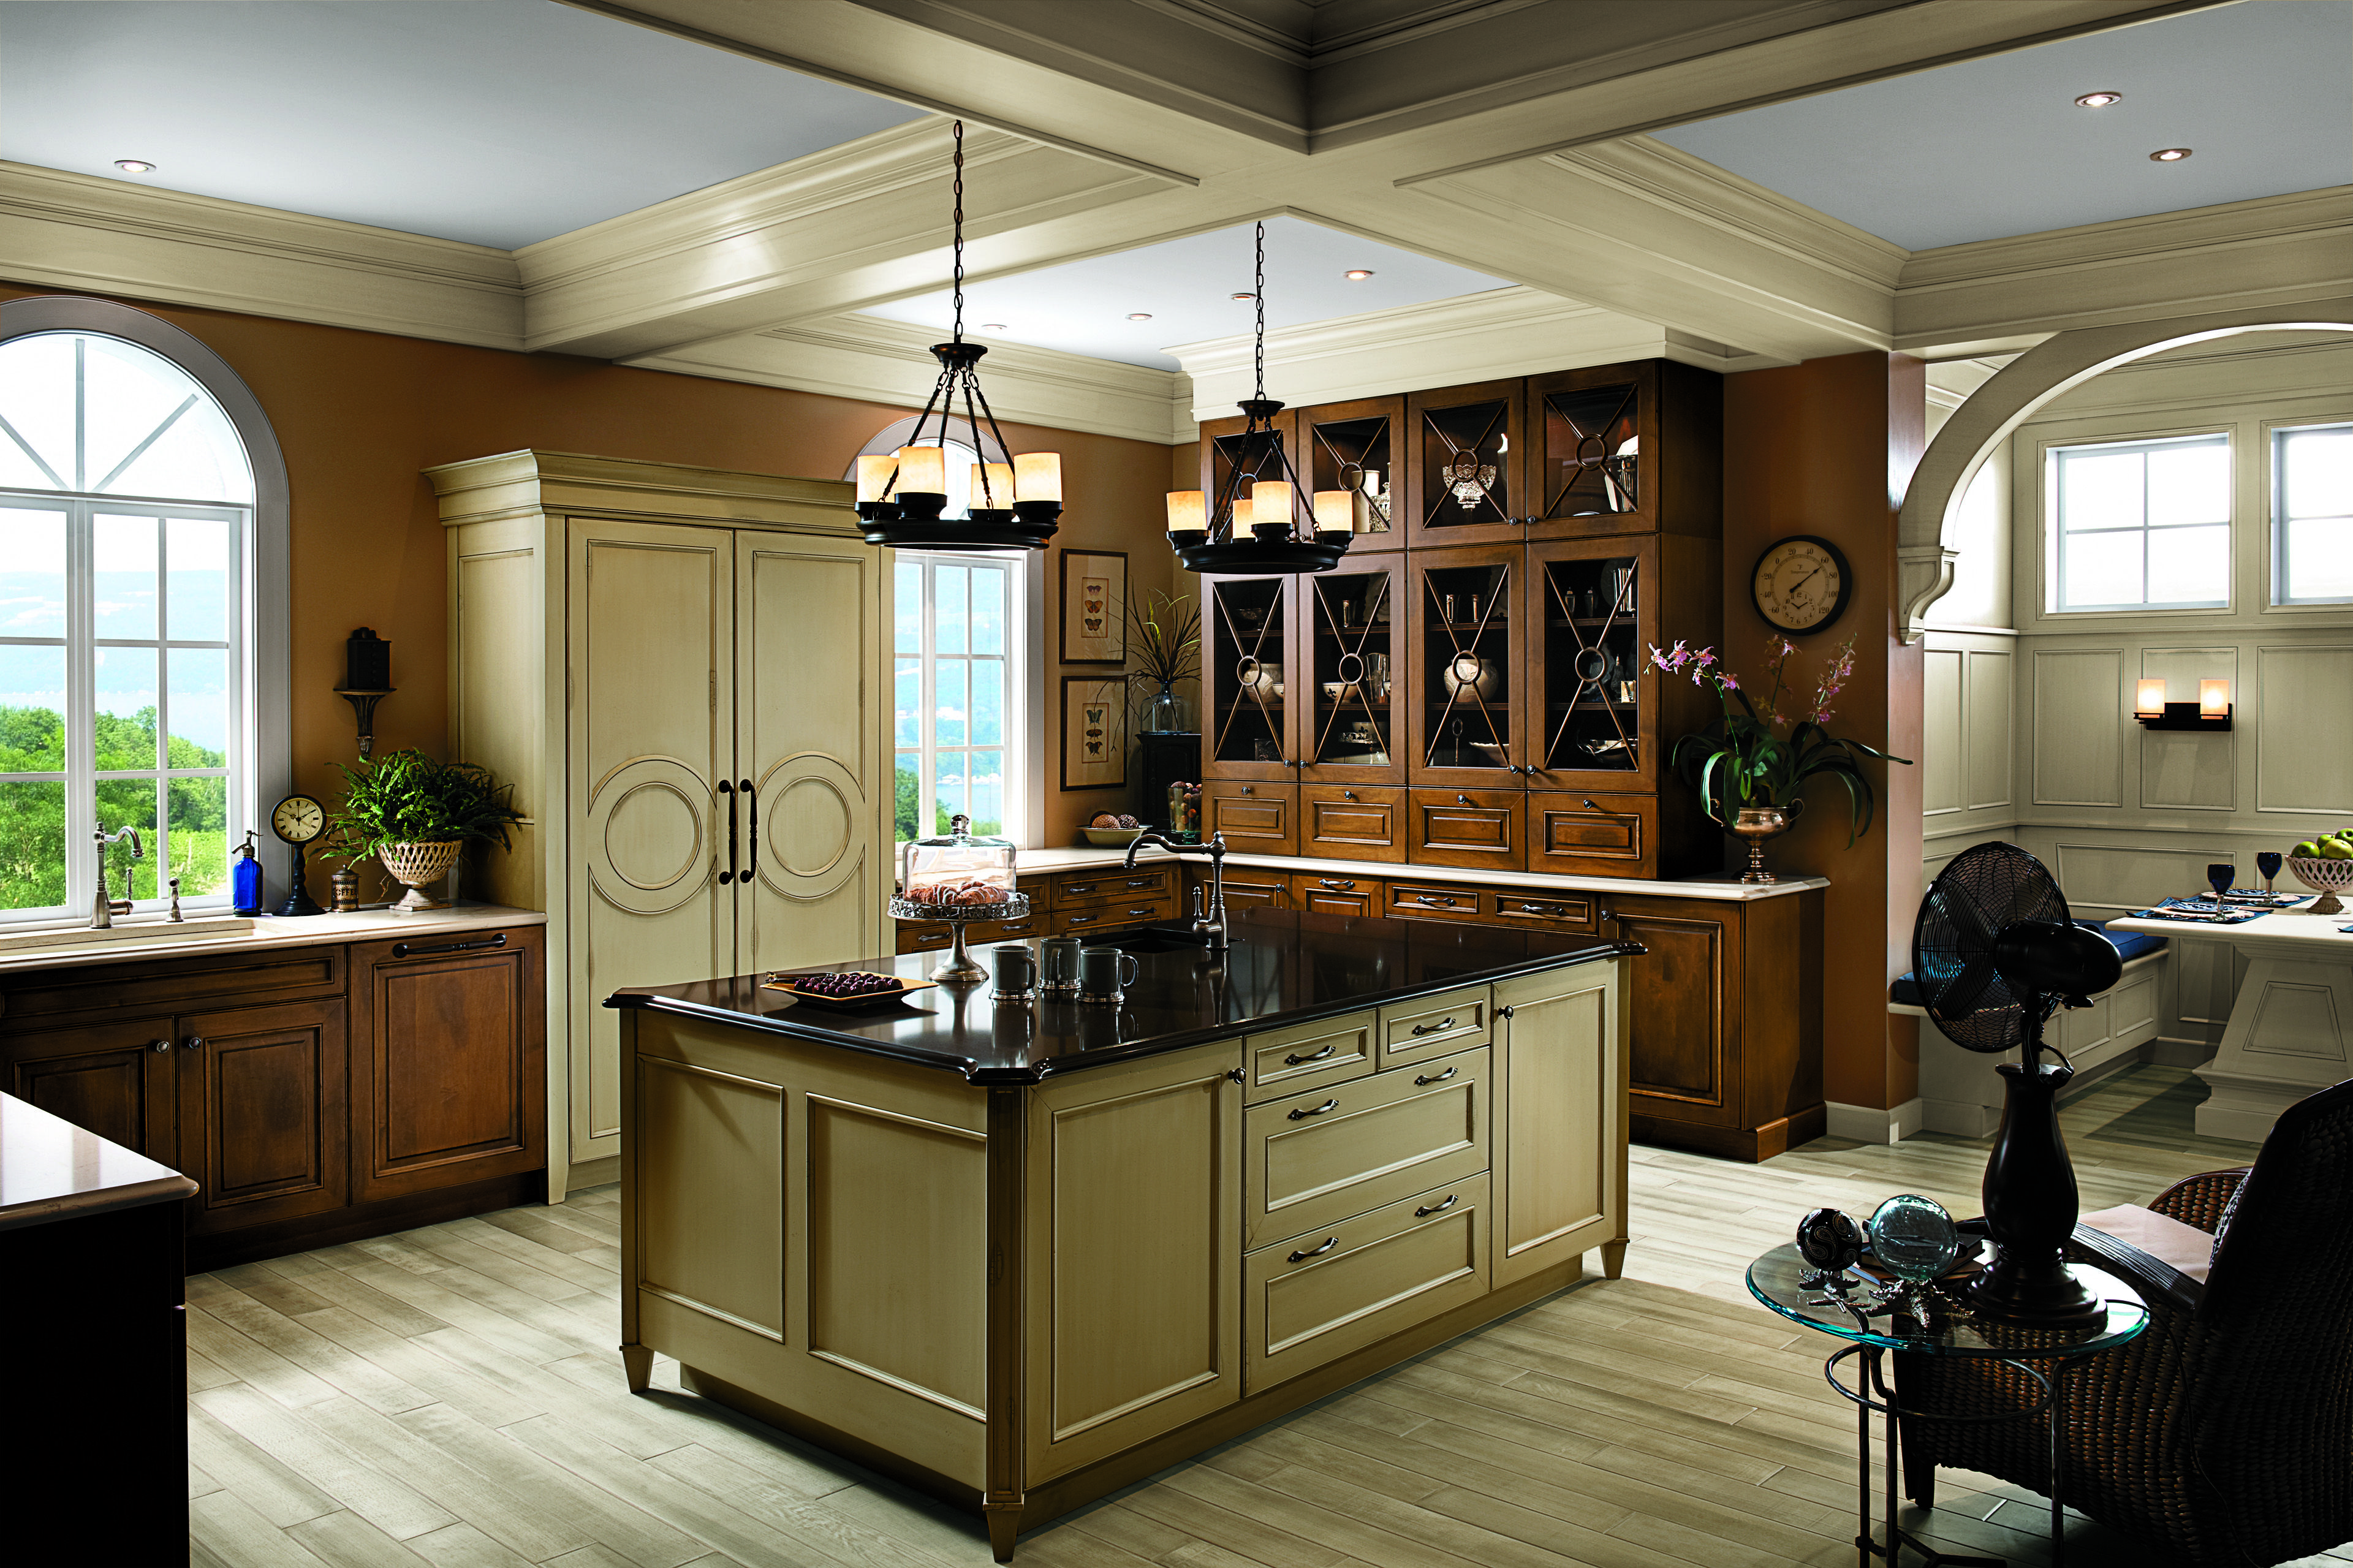 For Over 60 Years Wood Mode Has Been Widely Recognized For Excellence In Cabinet Design Ma Kitchen Remodel Small Kitchen Remodel Cost American Kitchen Design